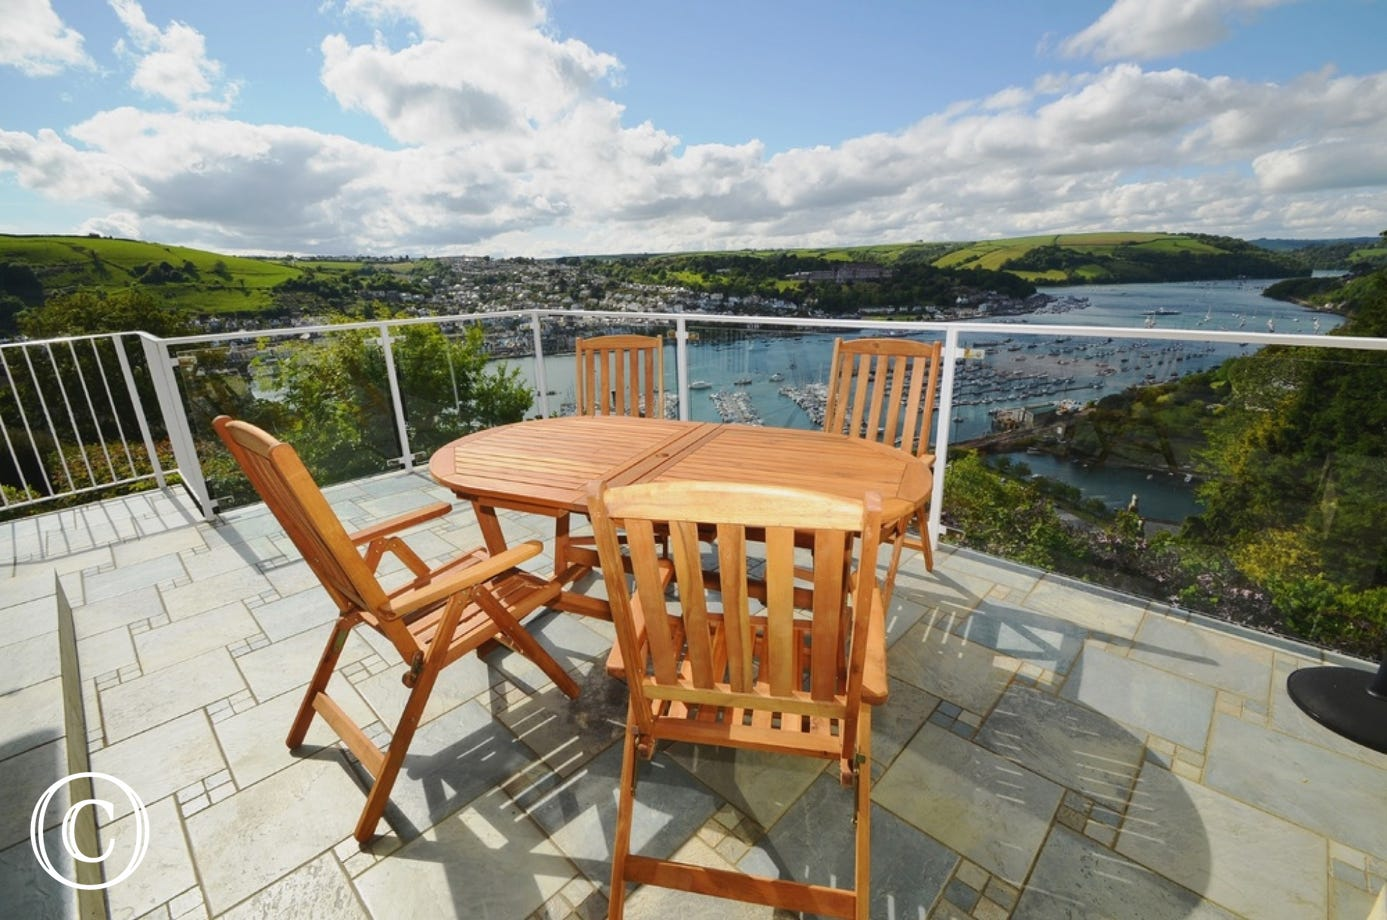 Terrace with barbecue overlooking the River Dart in Kingswear